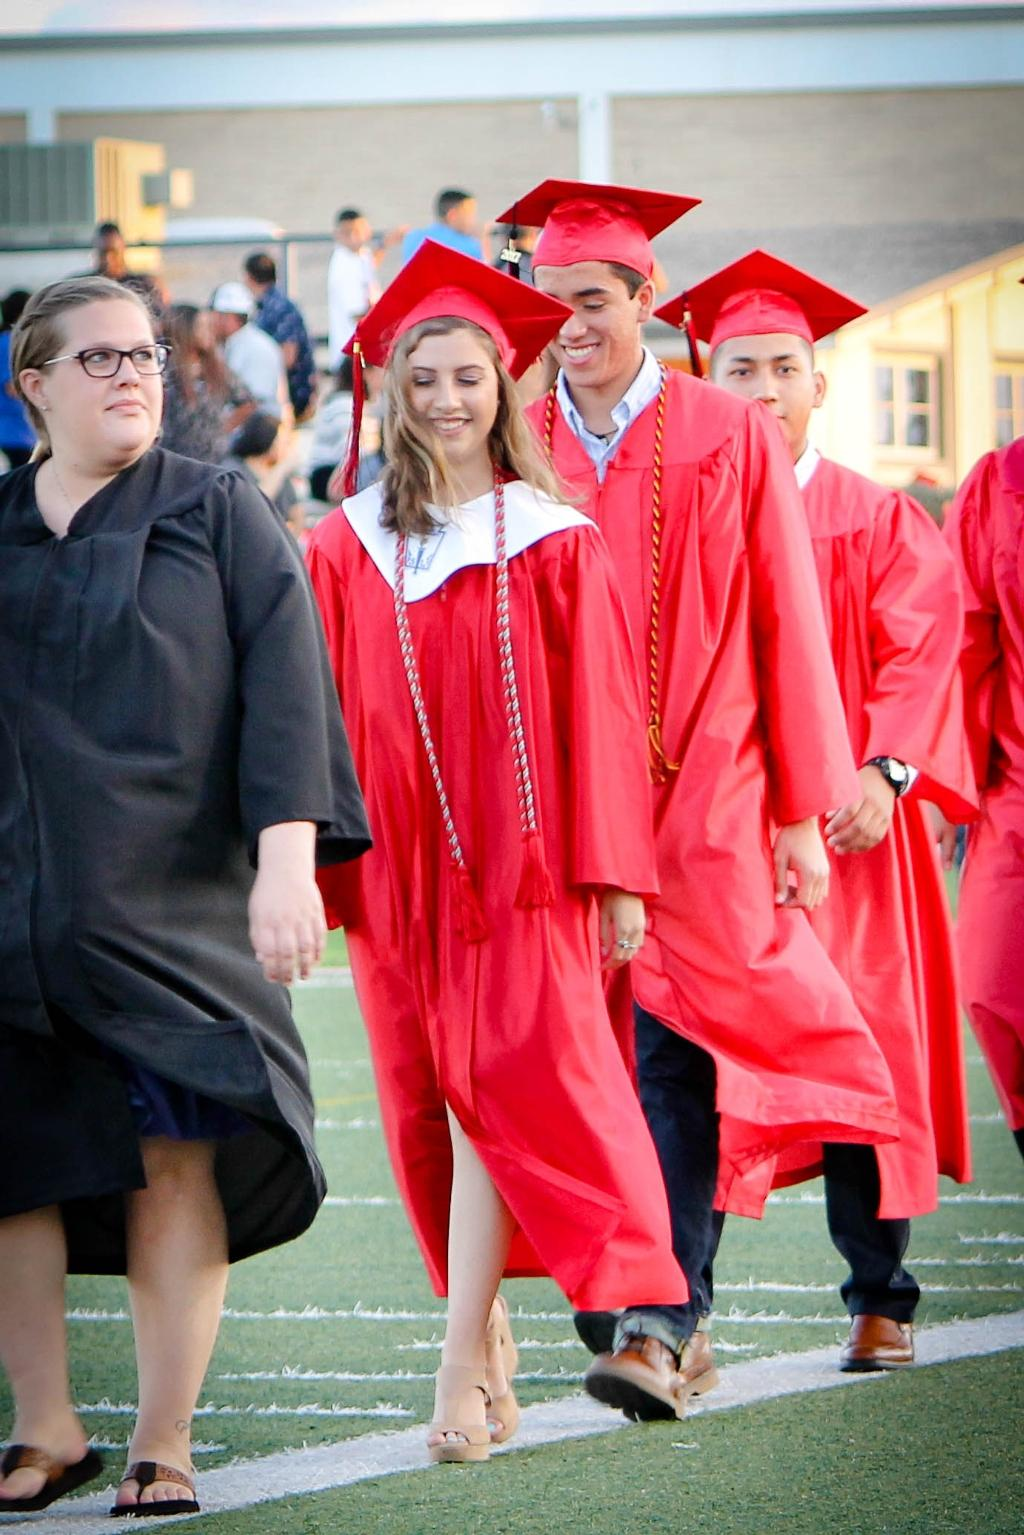 students of the victoria east high school 2018 graduating walking into memorial stadium, smiling female and male student